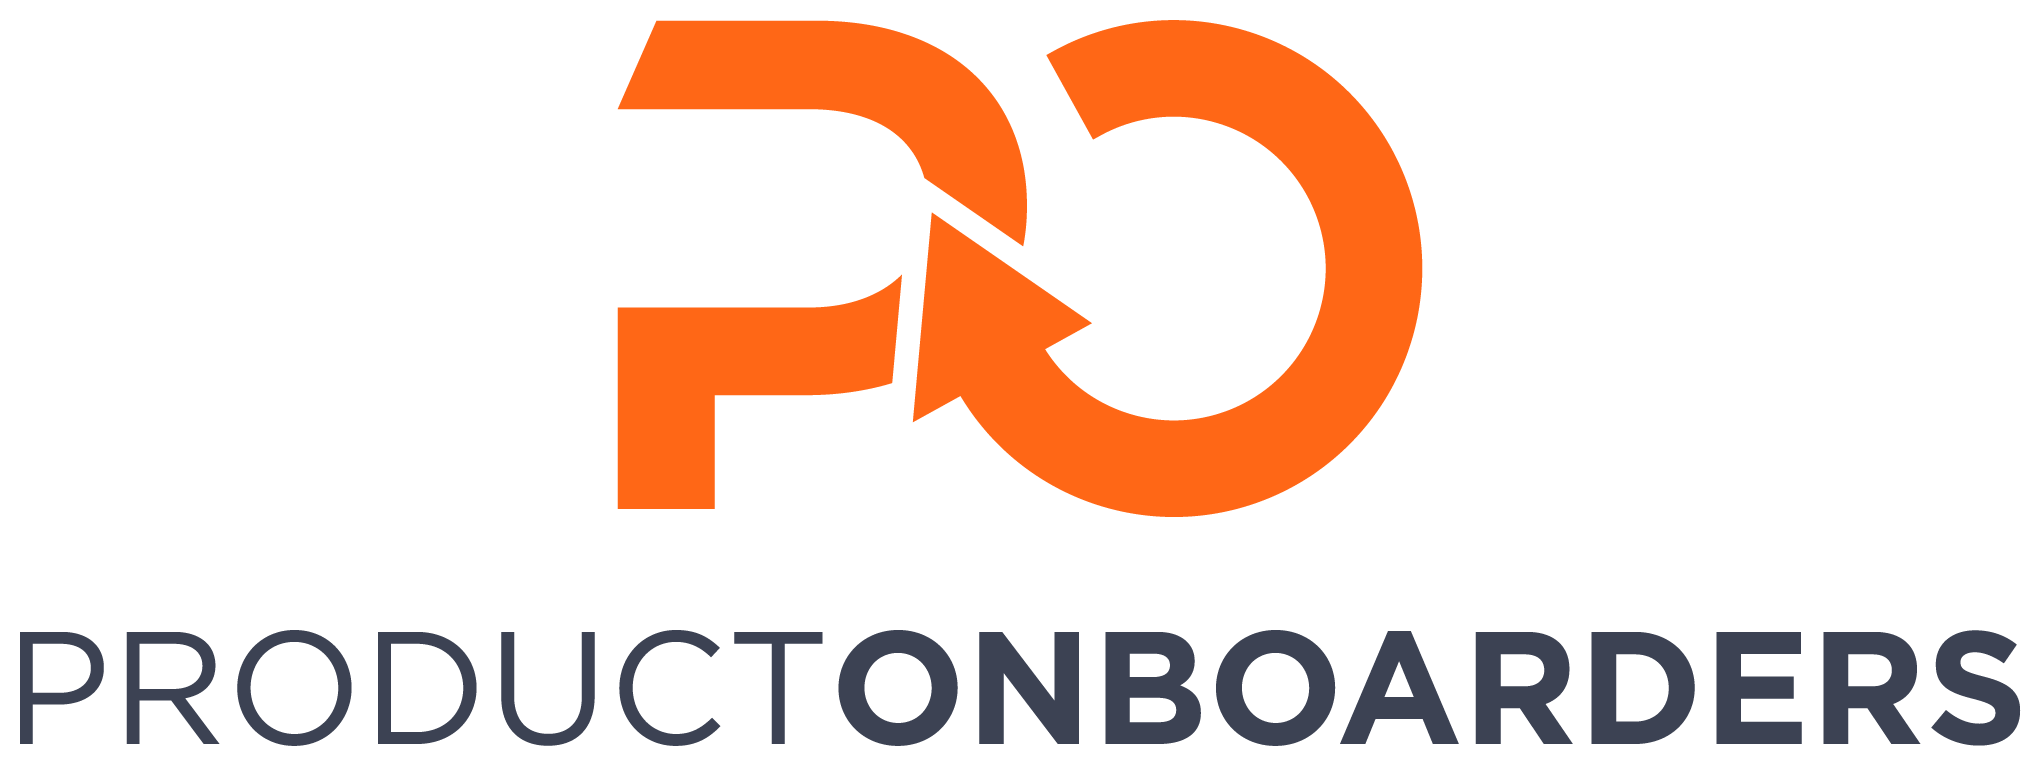 The Product Onboarders